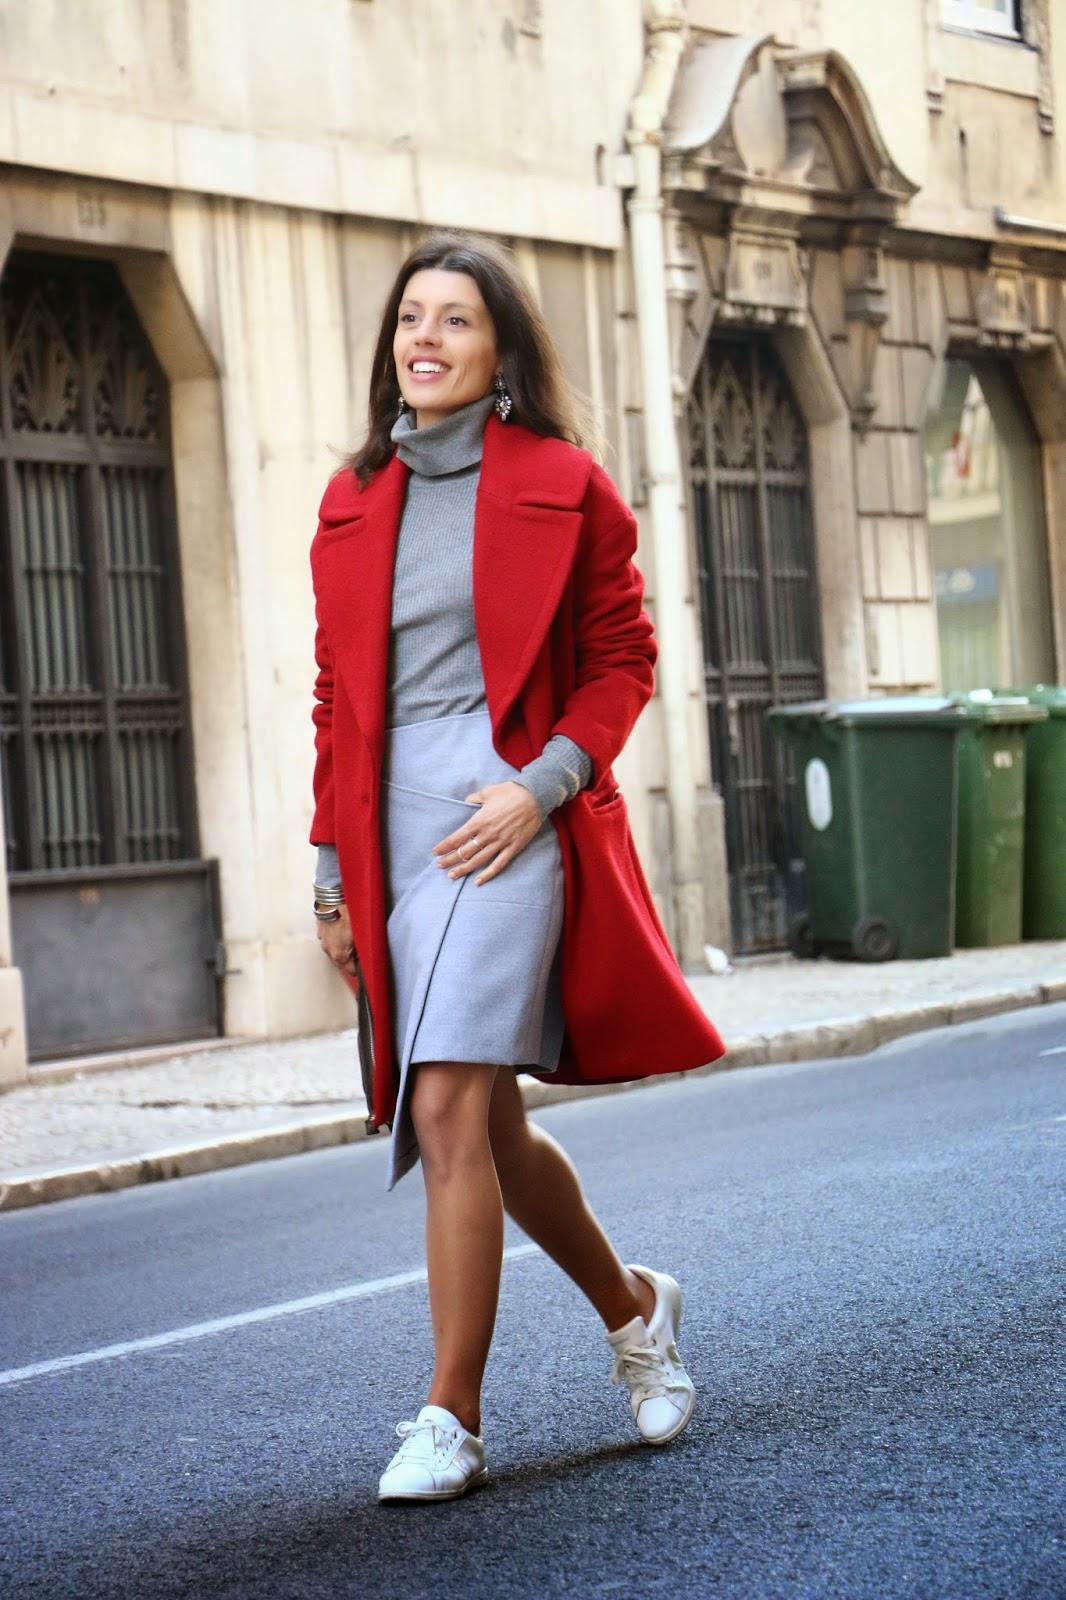 http://ilovefitametrica.blogspot.pt/2014/12/spreading-red-in-city.html